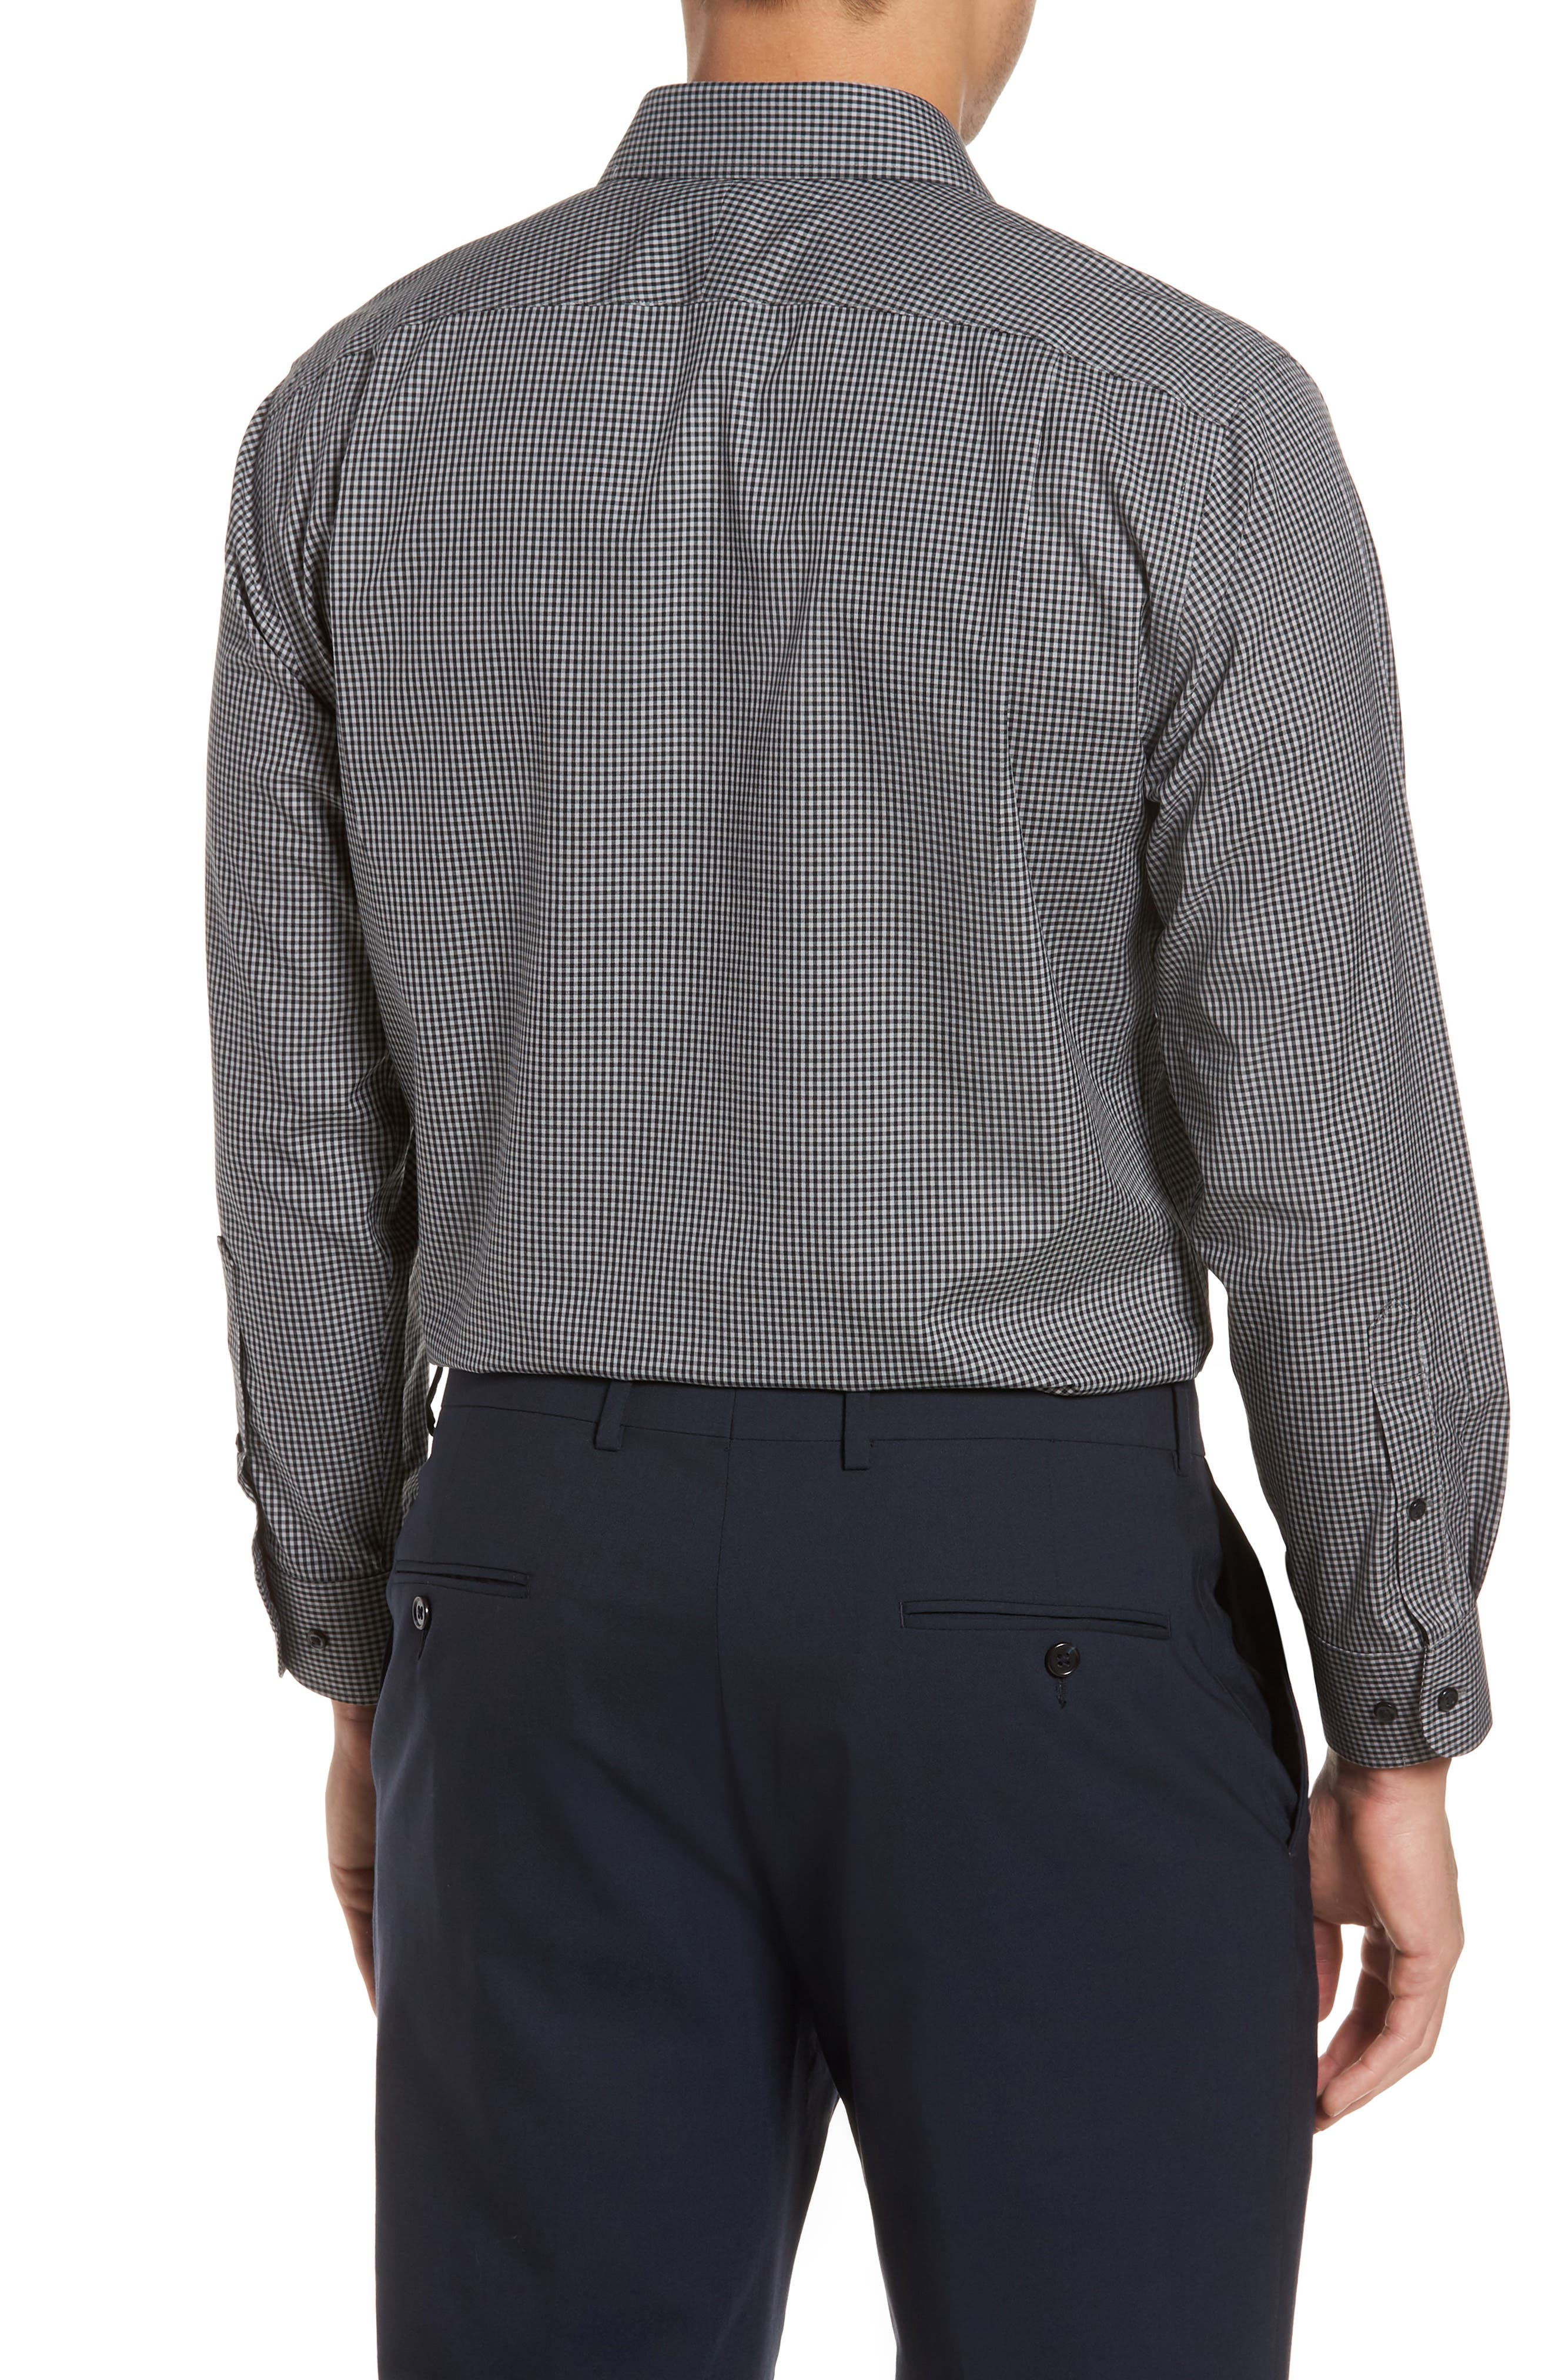 Smartcare<sup>™</sup> Trim Fit Check Dress Shirt,                             Alternate thumbnail 3, color,                             001